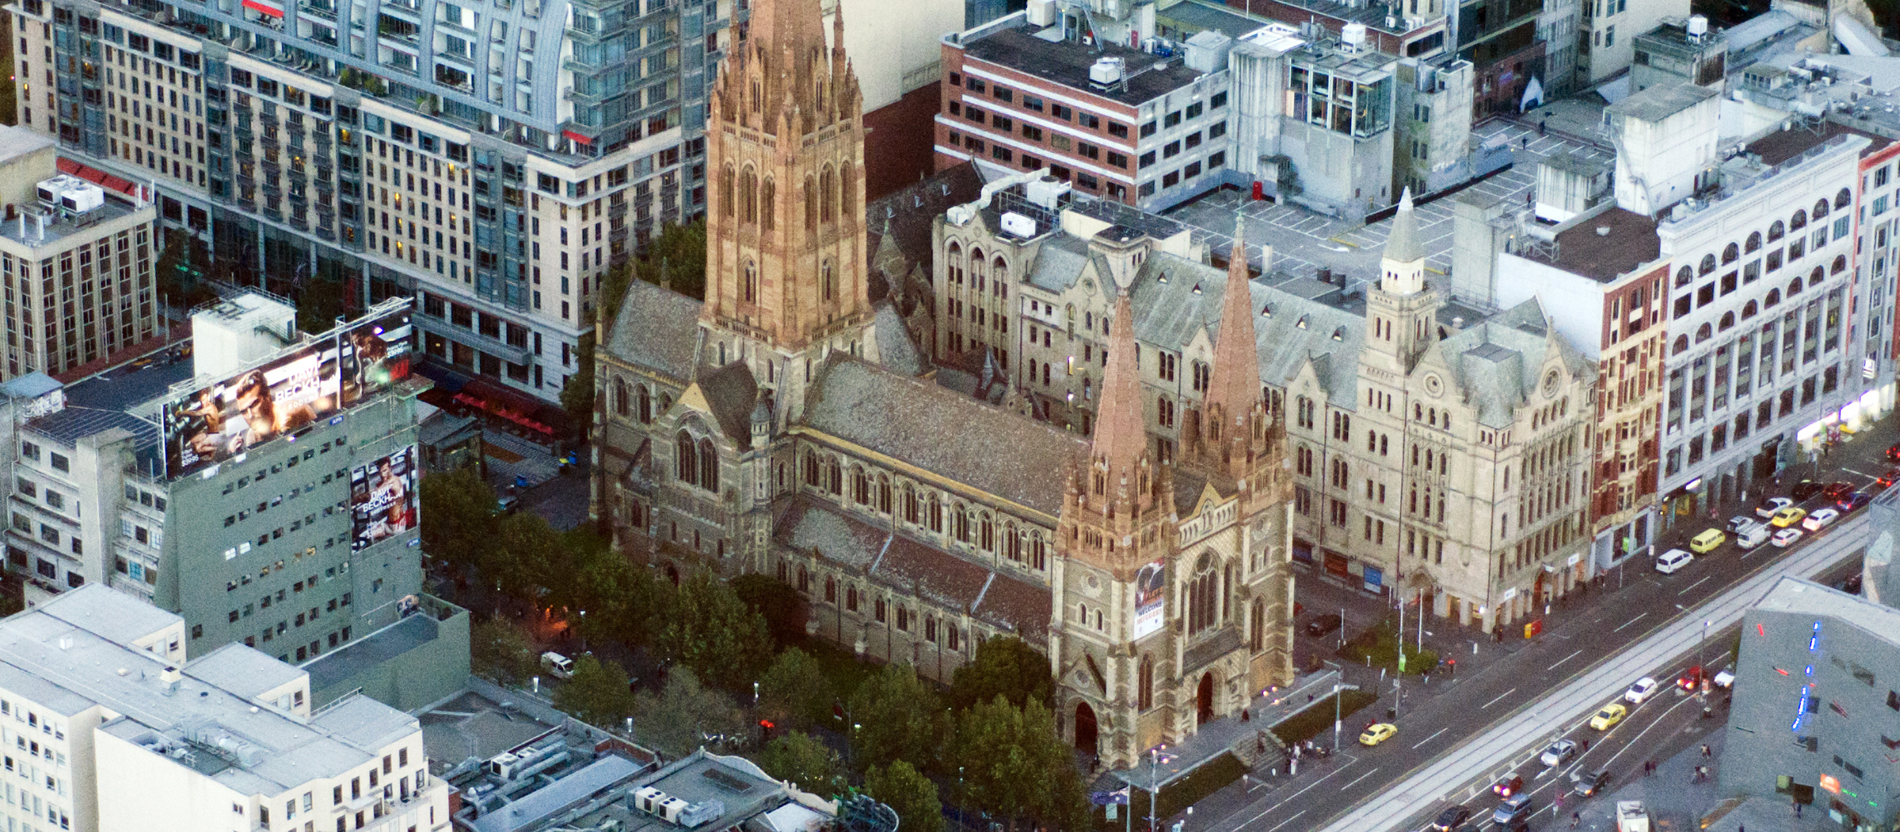 St. Pauls-Kathedrale in Melbourne